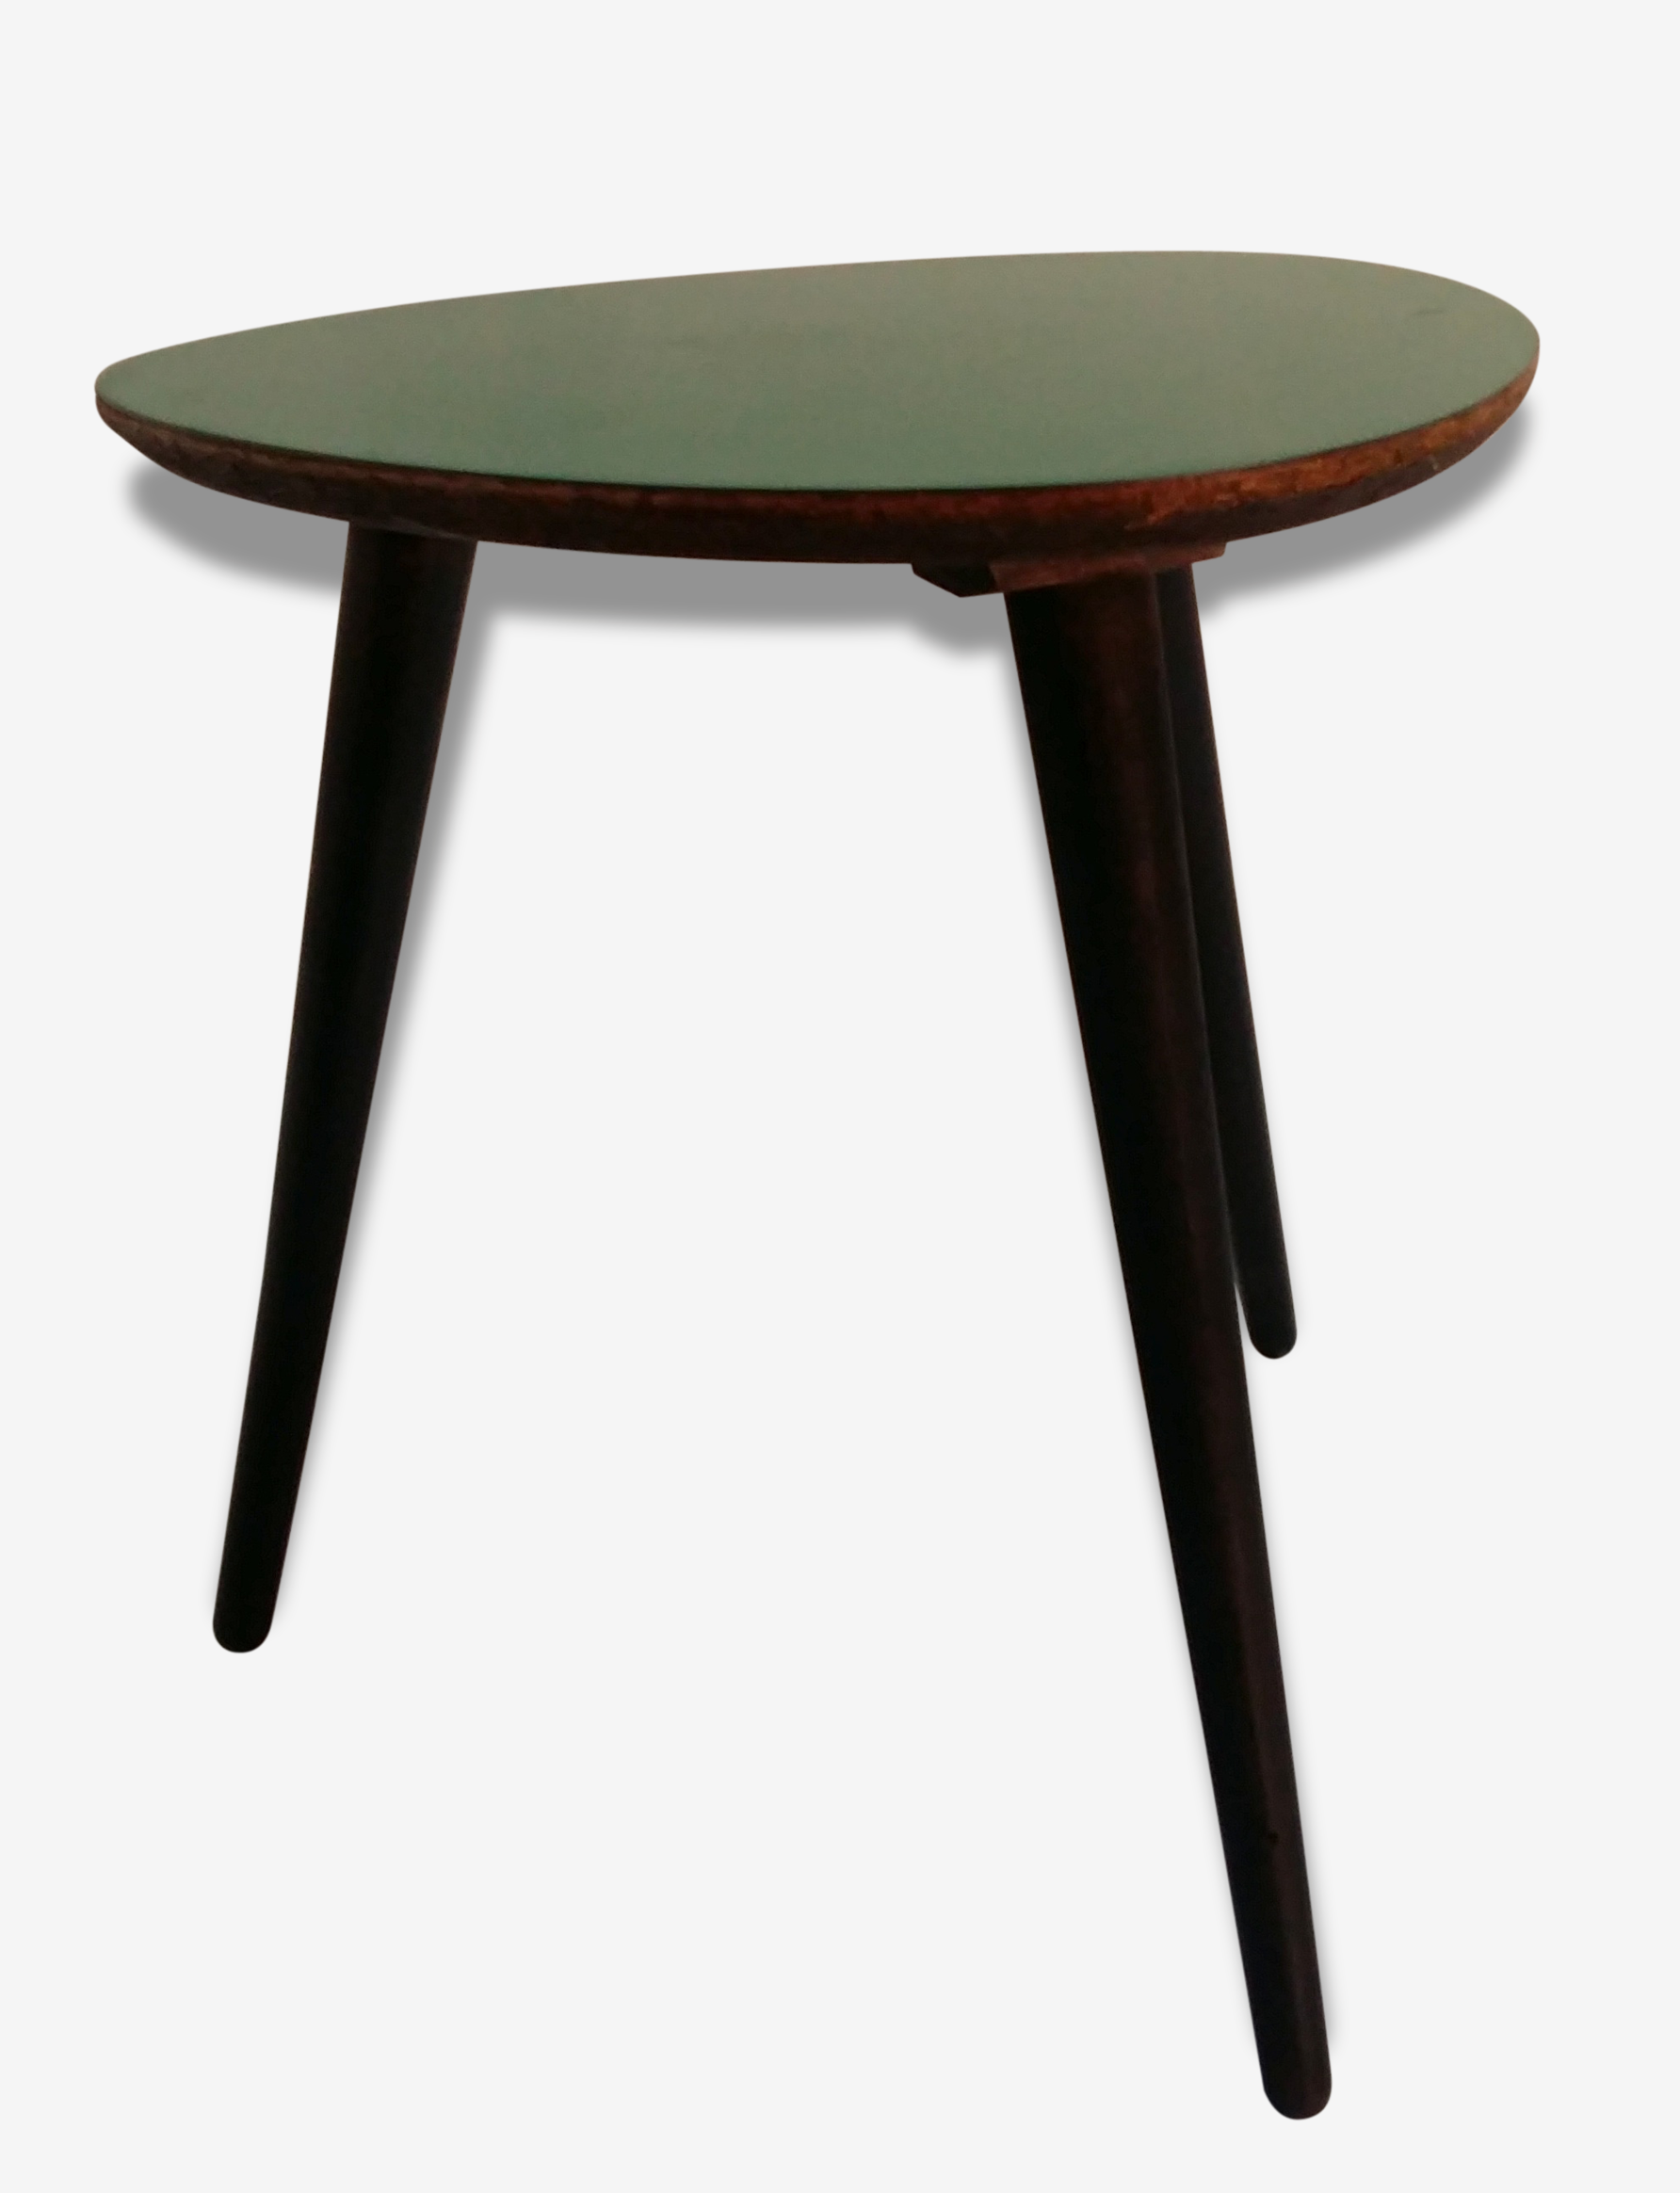 Table Tripode Années 50 table basse tripode années 50 formica vert - formica - green